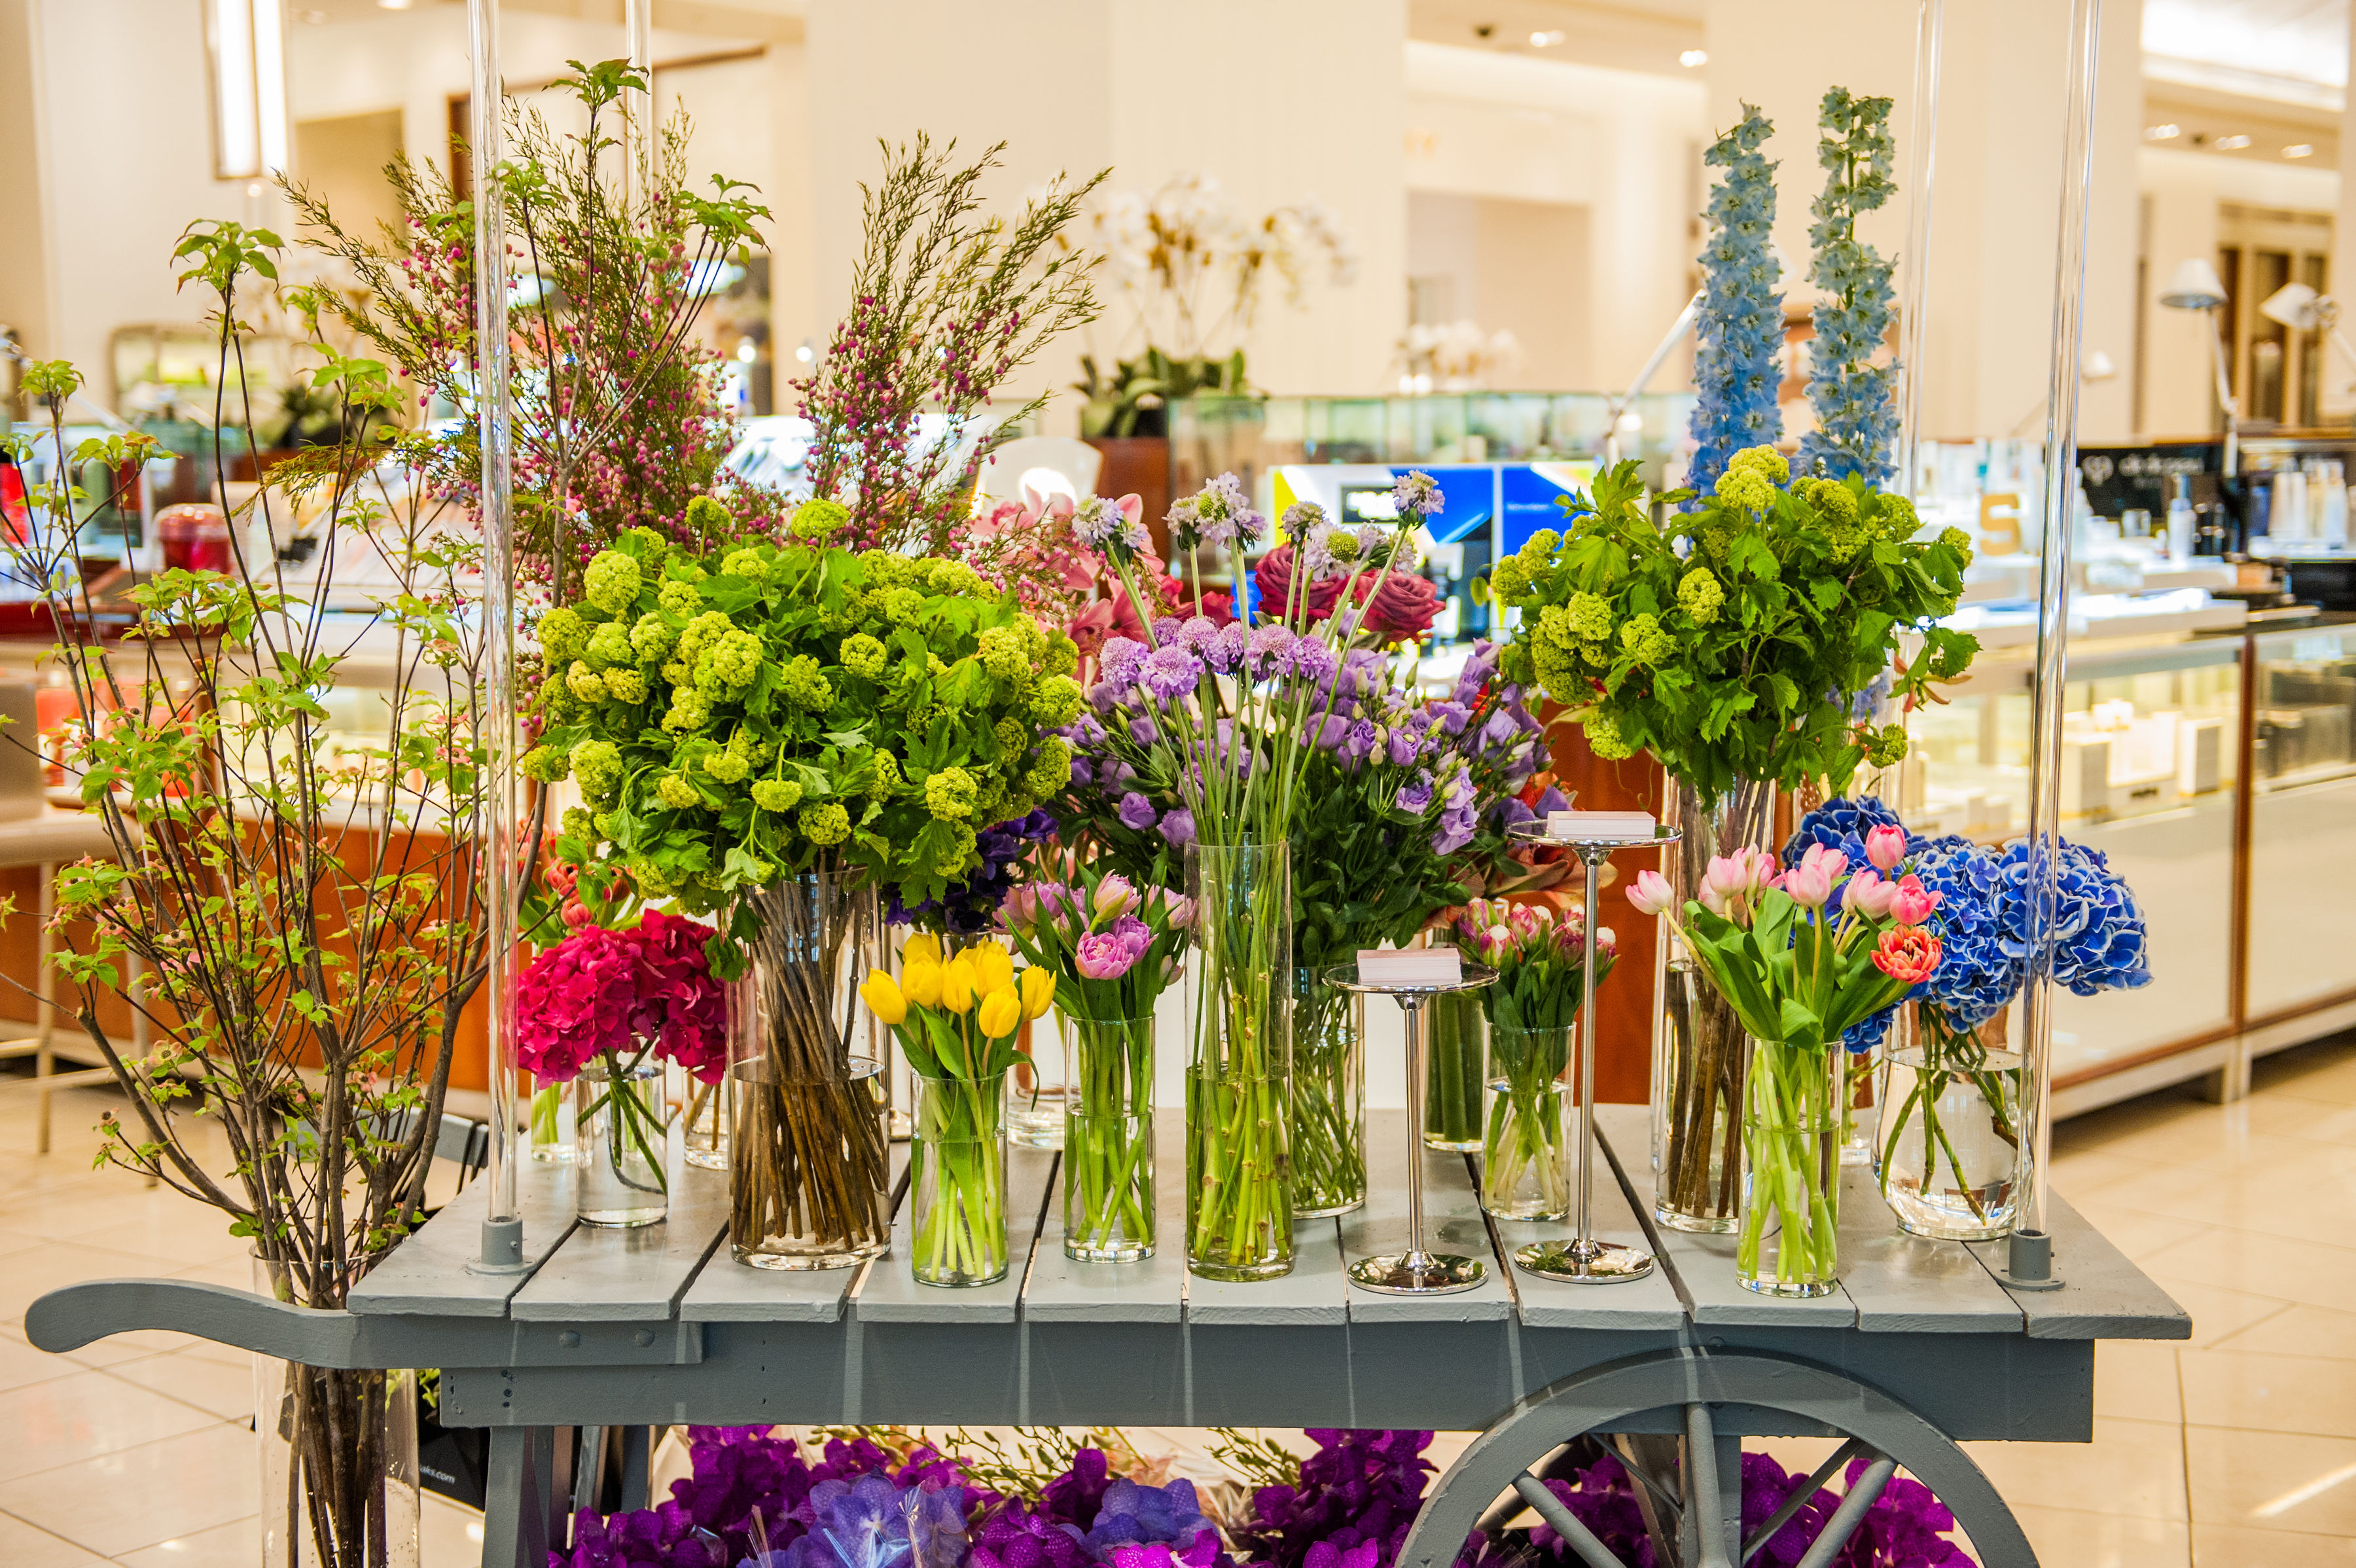 Sweet spring florals on display at Saks Fifth Avenue. Photo by: Cindy Fandl Photography